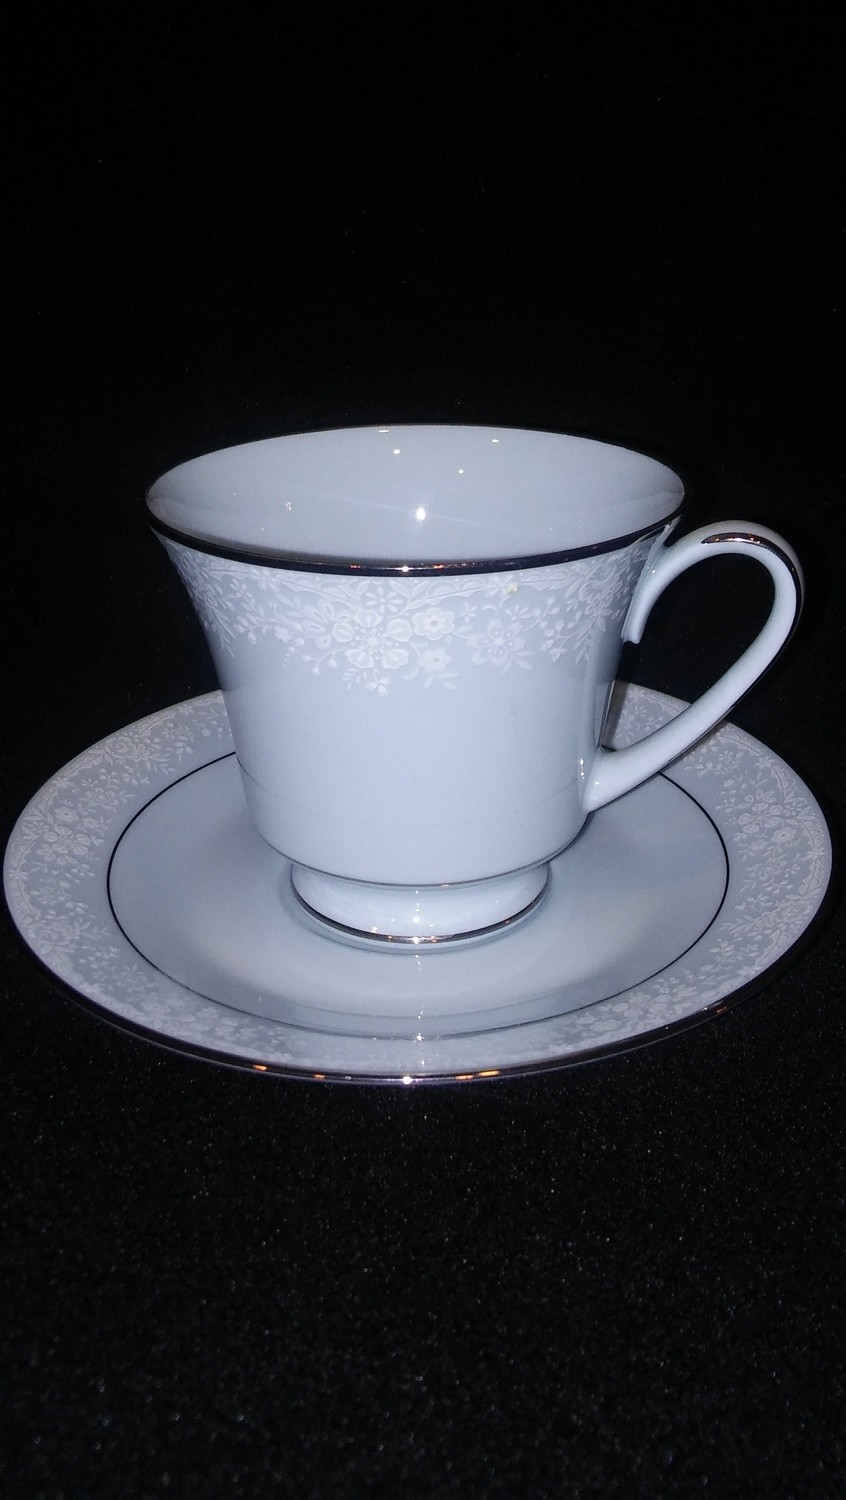 Noritake China, Fidelity Pattern #8003W81, Footed Cup & Saucer Set